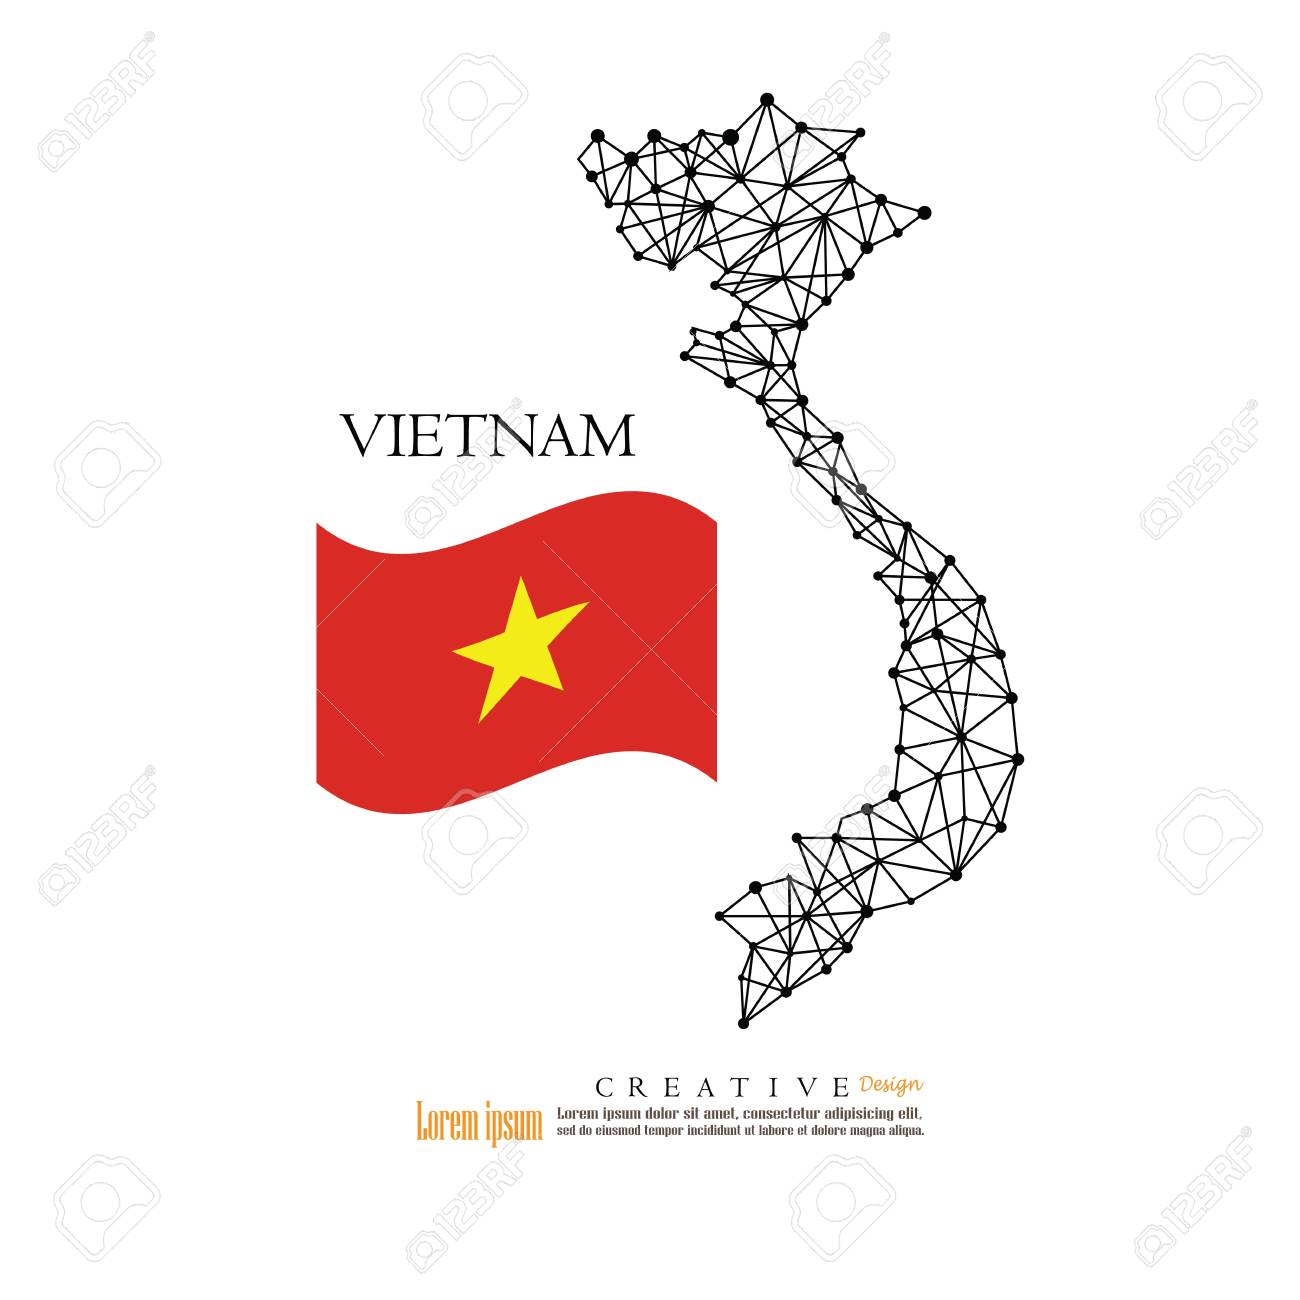 Outline map of Vietnam with national flag